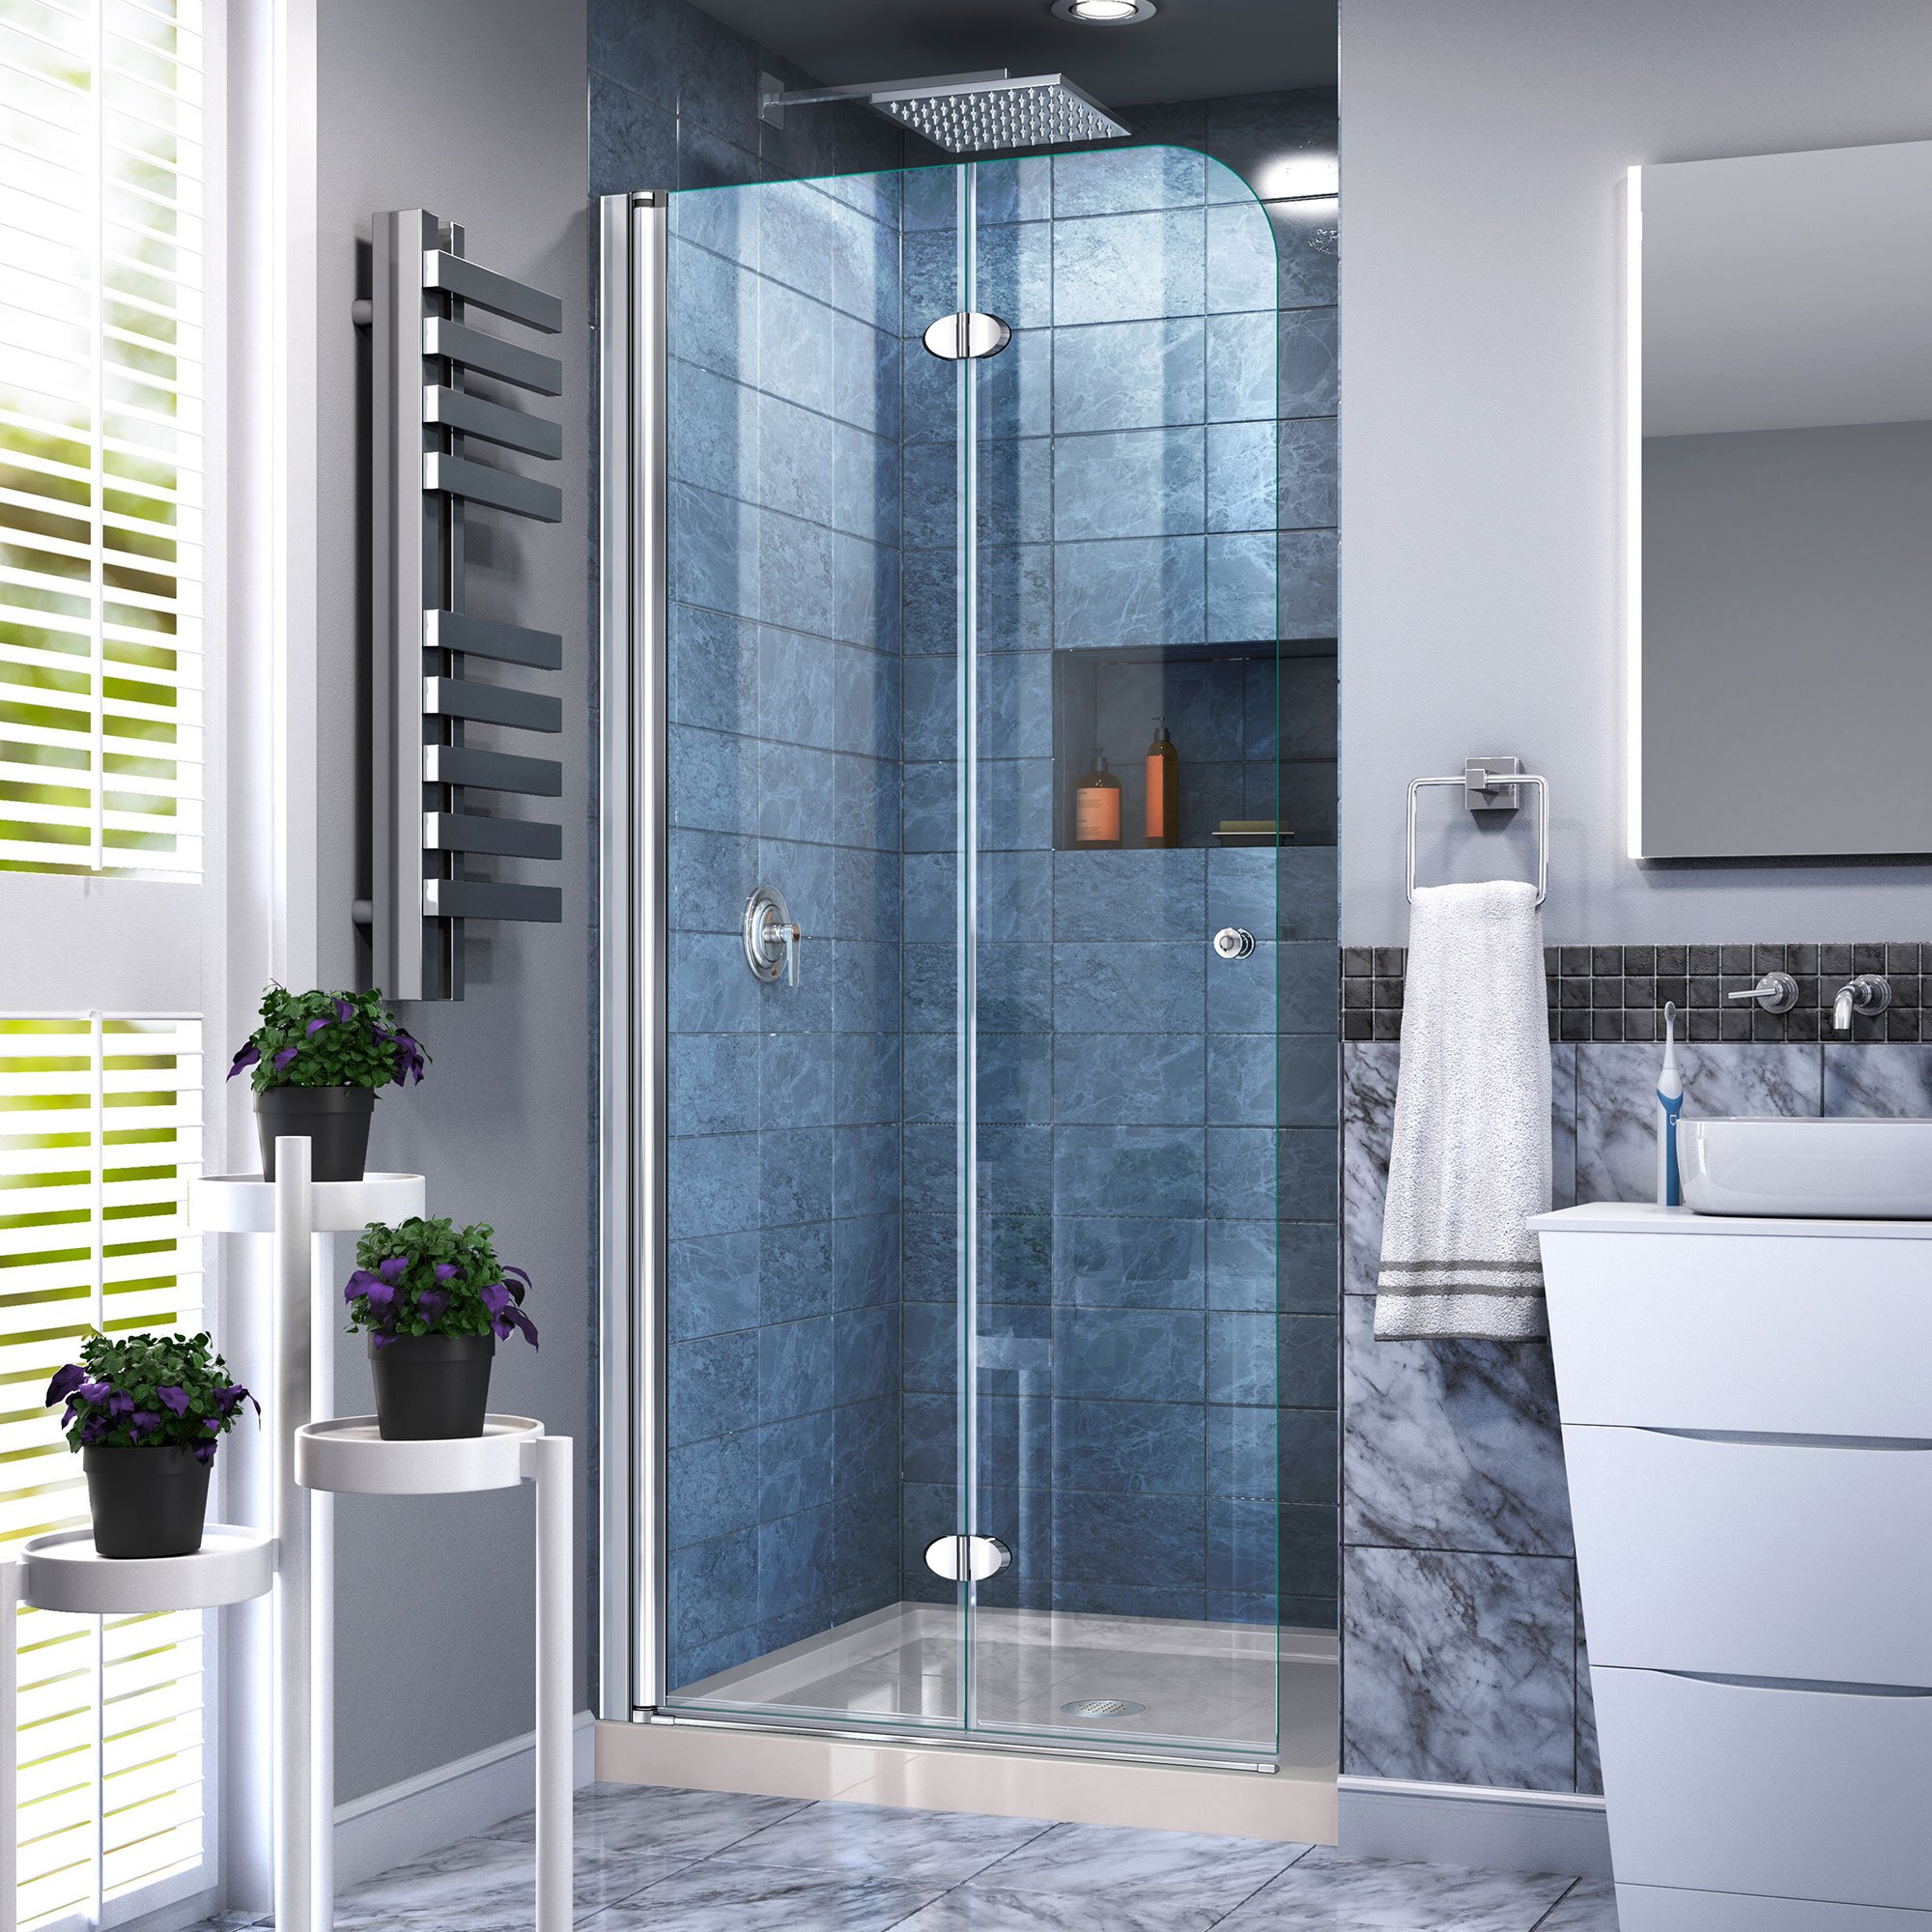 DreamLine Aqua Fold 32 in. D x 32 in. W x 74 3/4 in. H Frameless Bi-Fold Shower Door in Chrome with Biscuit Acrylic Base Kit, DL-6529C-22-01